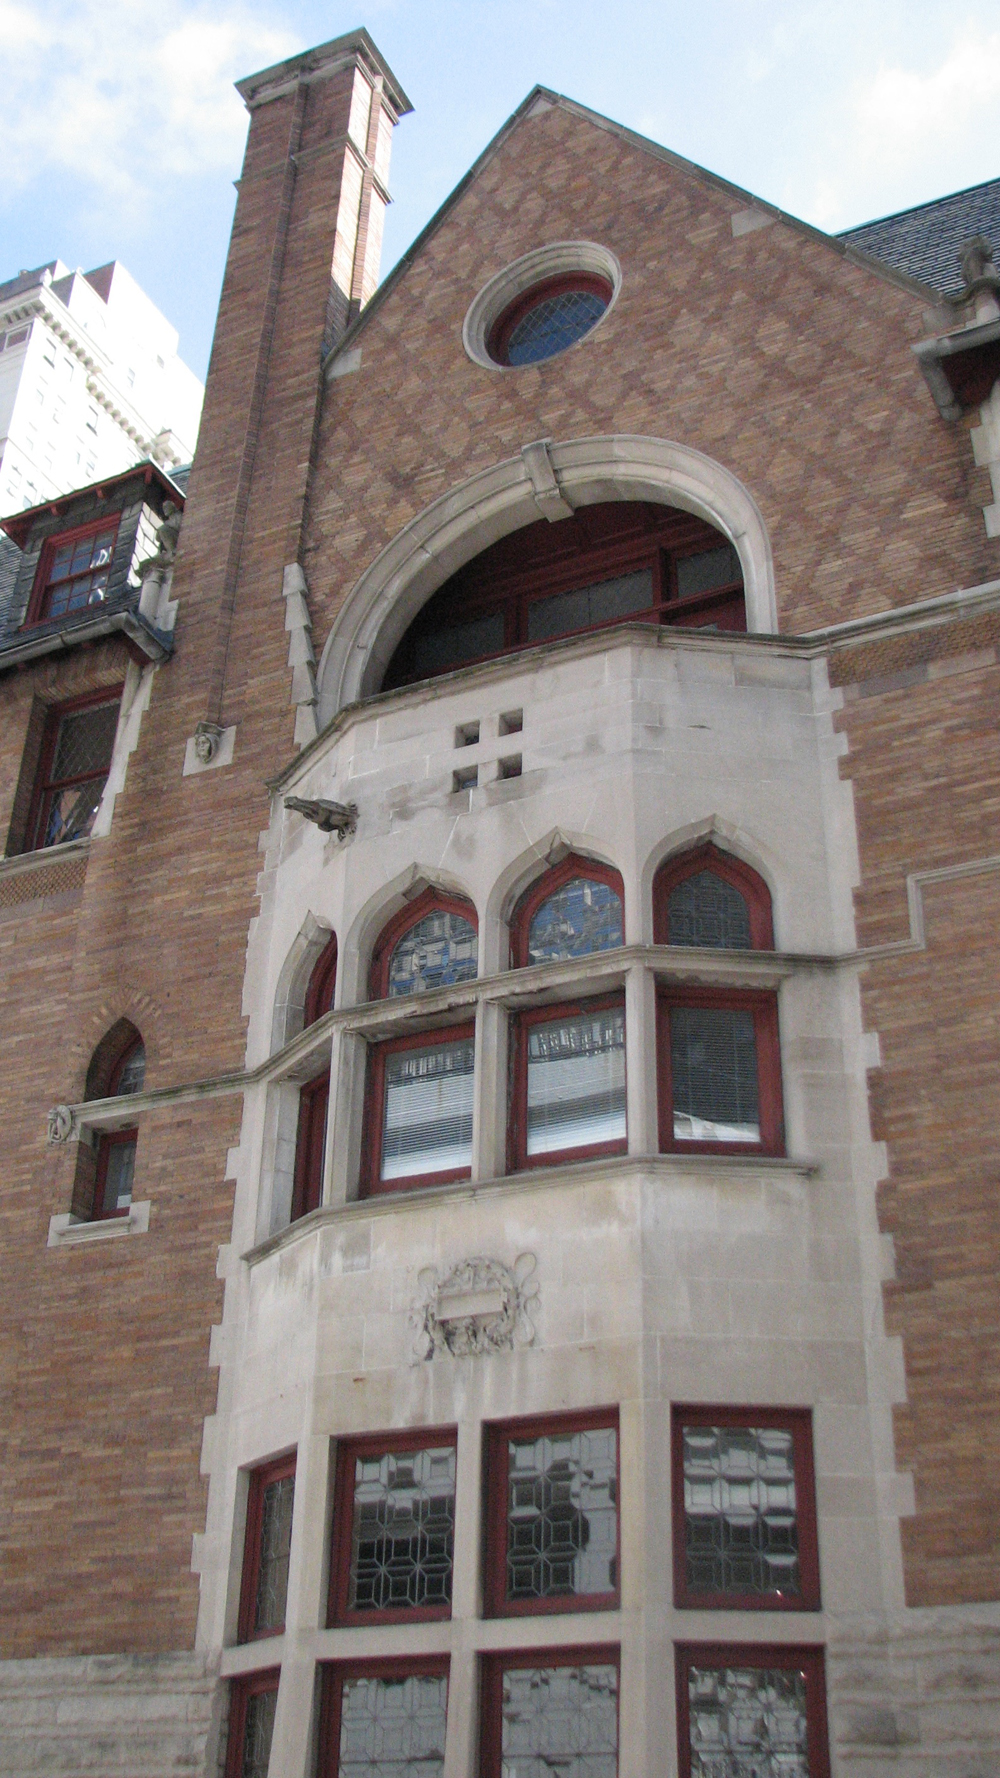 The side of the Moore House features a Venetian-style loggia on the top floor.